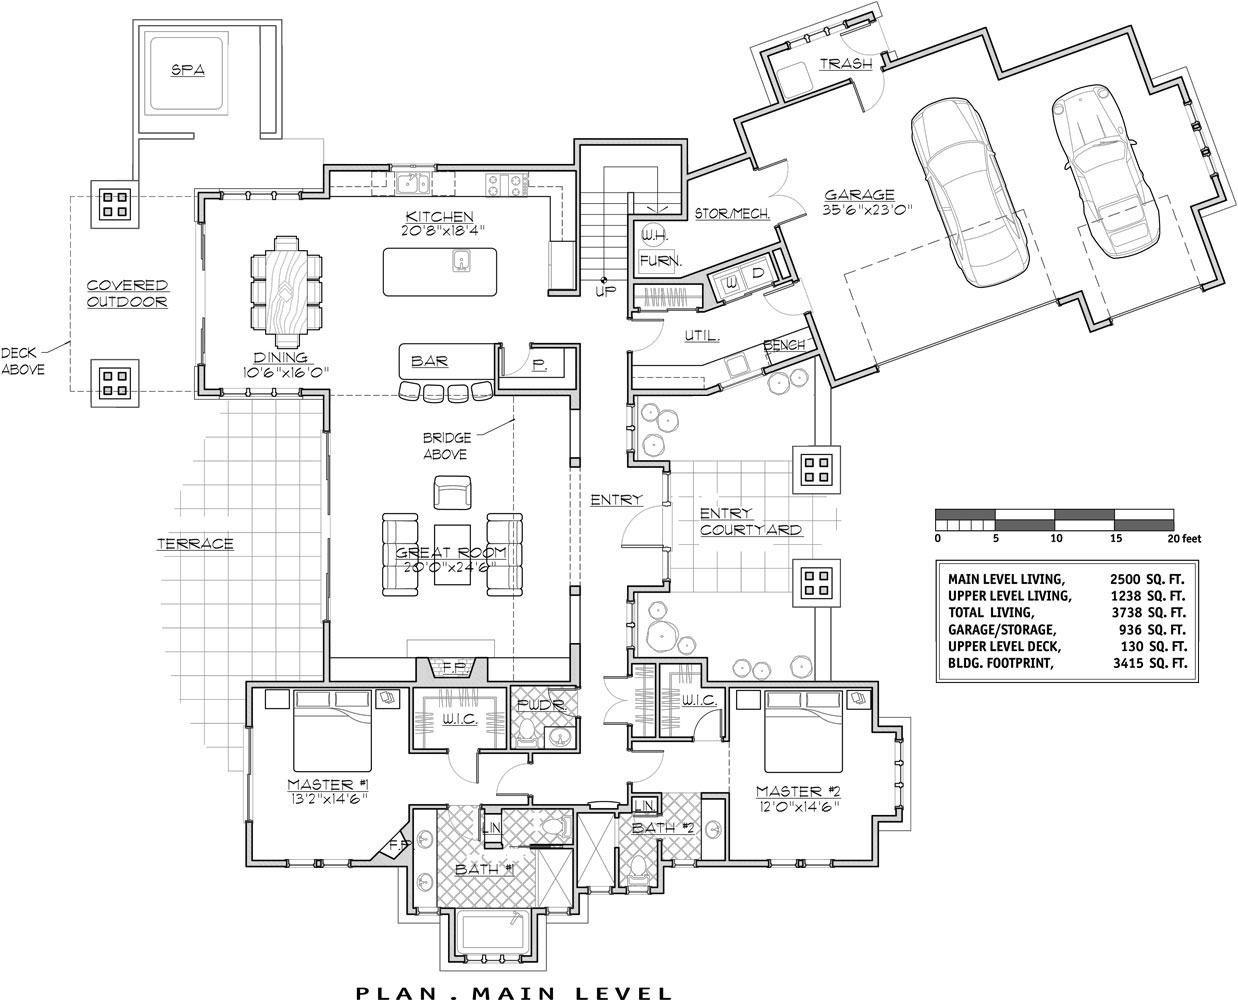 Luxury Lakehouse 9046 4 Bedrooms and 4 Baths – Luxury Estate Home Floor Plans